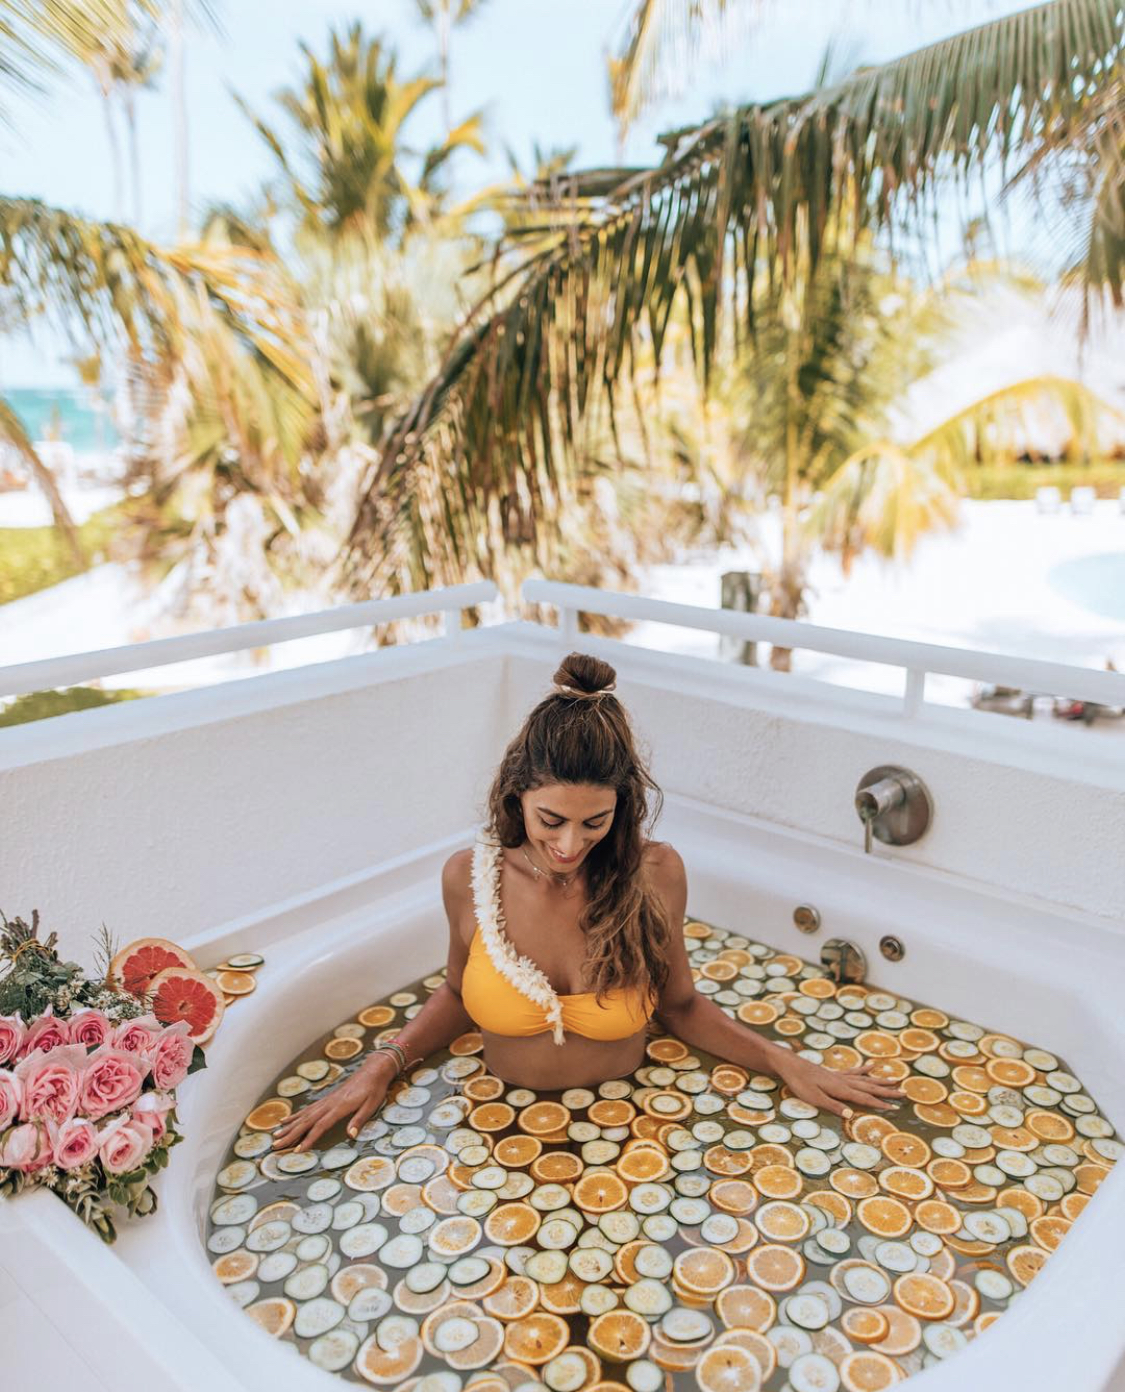 Lisa Homsy in a fruit bath in Punta Cana, Dominican Republic